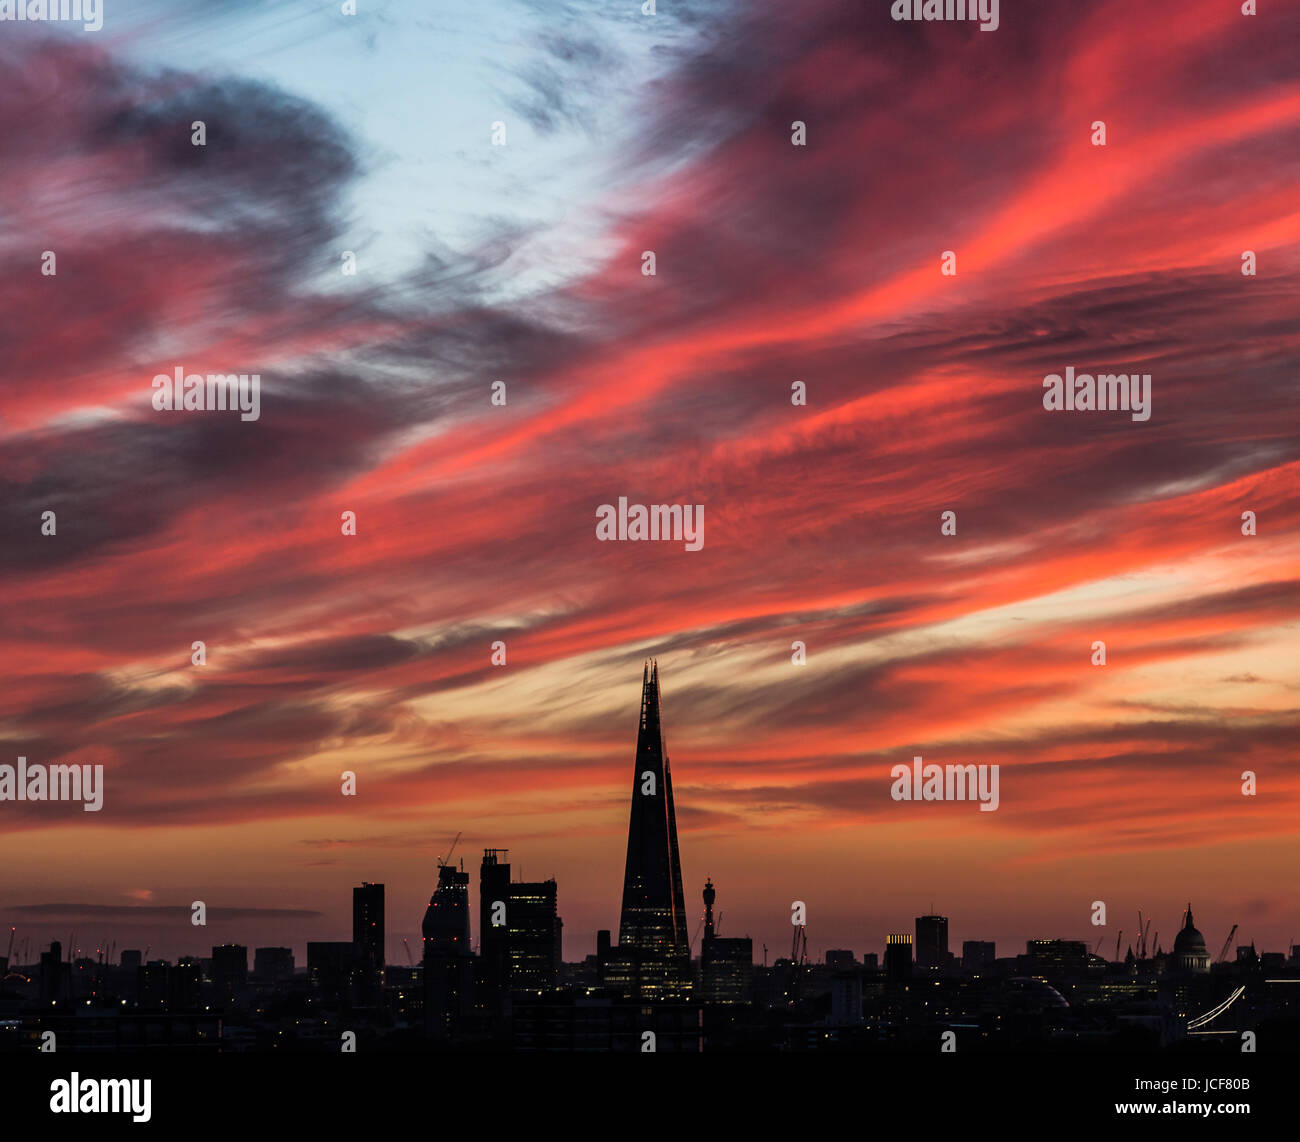 London, UK. 15th June, 2017. UK Weather: Evening sunset over the city including The Shard skyscraper building. Credit: Stock Photo